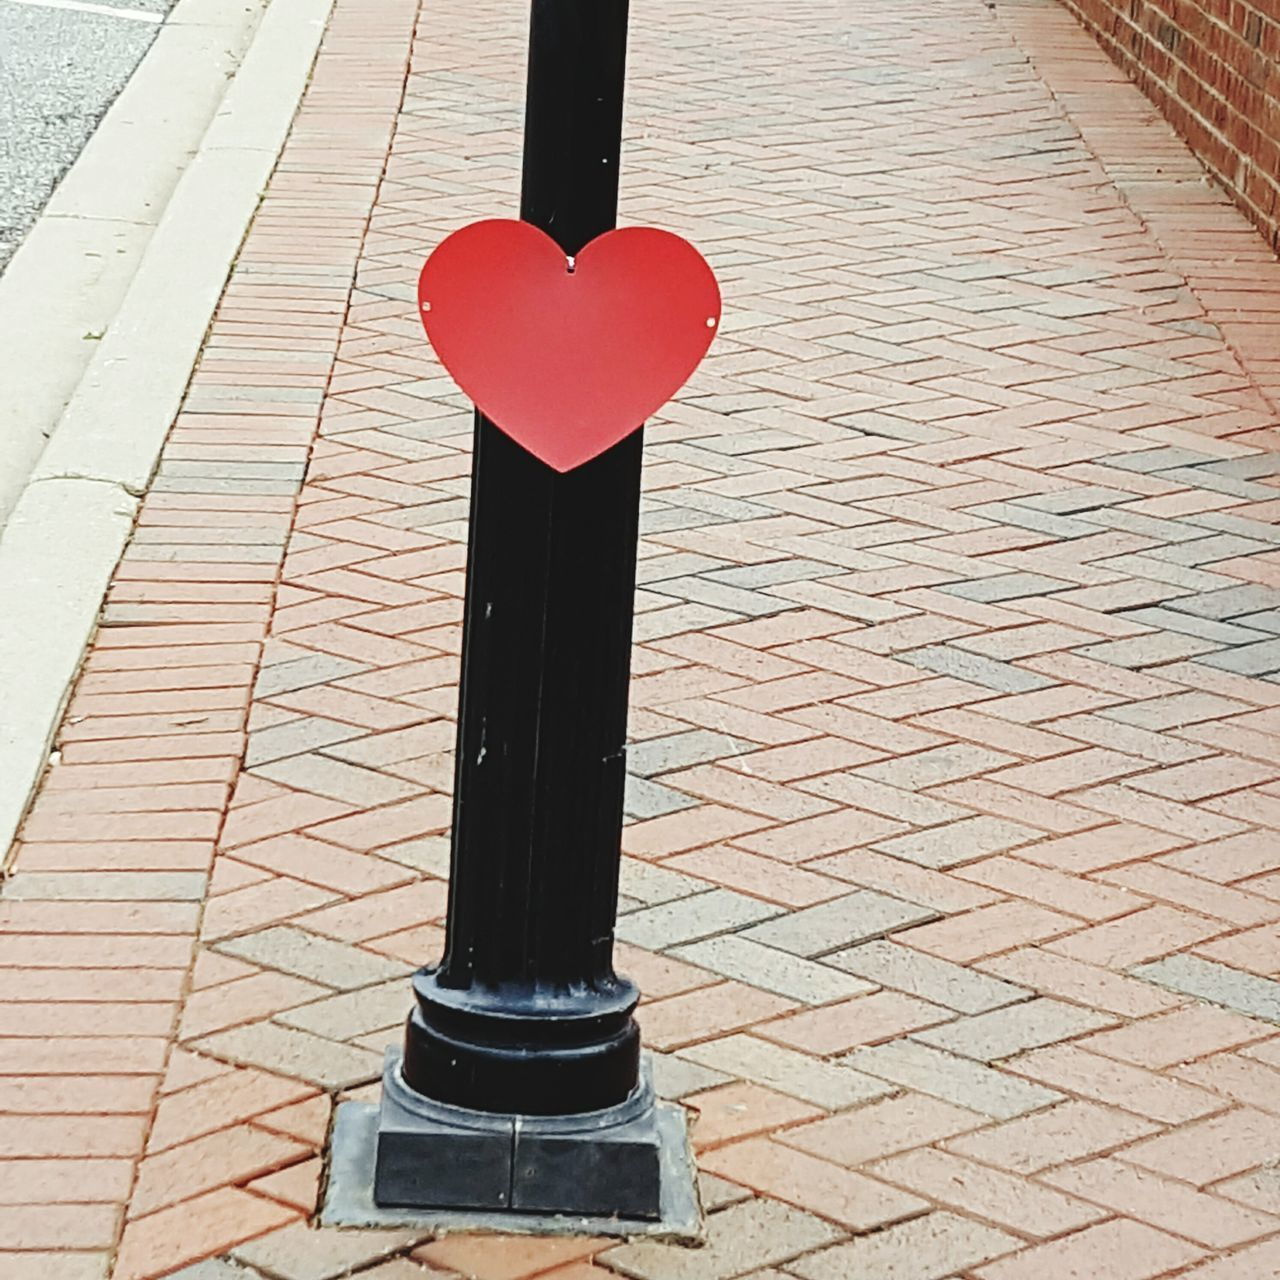 Love Where You Live Single Object Spartanburg, SC Heartsalive Red Heart Shape Sunlight Outdoors No People Day Lovewhereyoulive Ilovehim